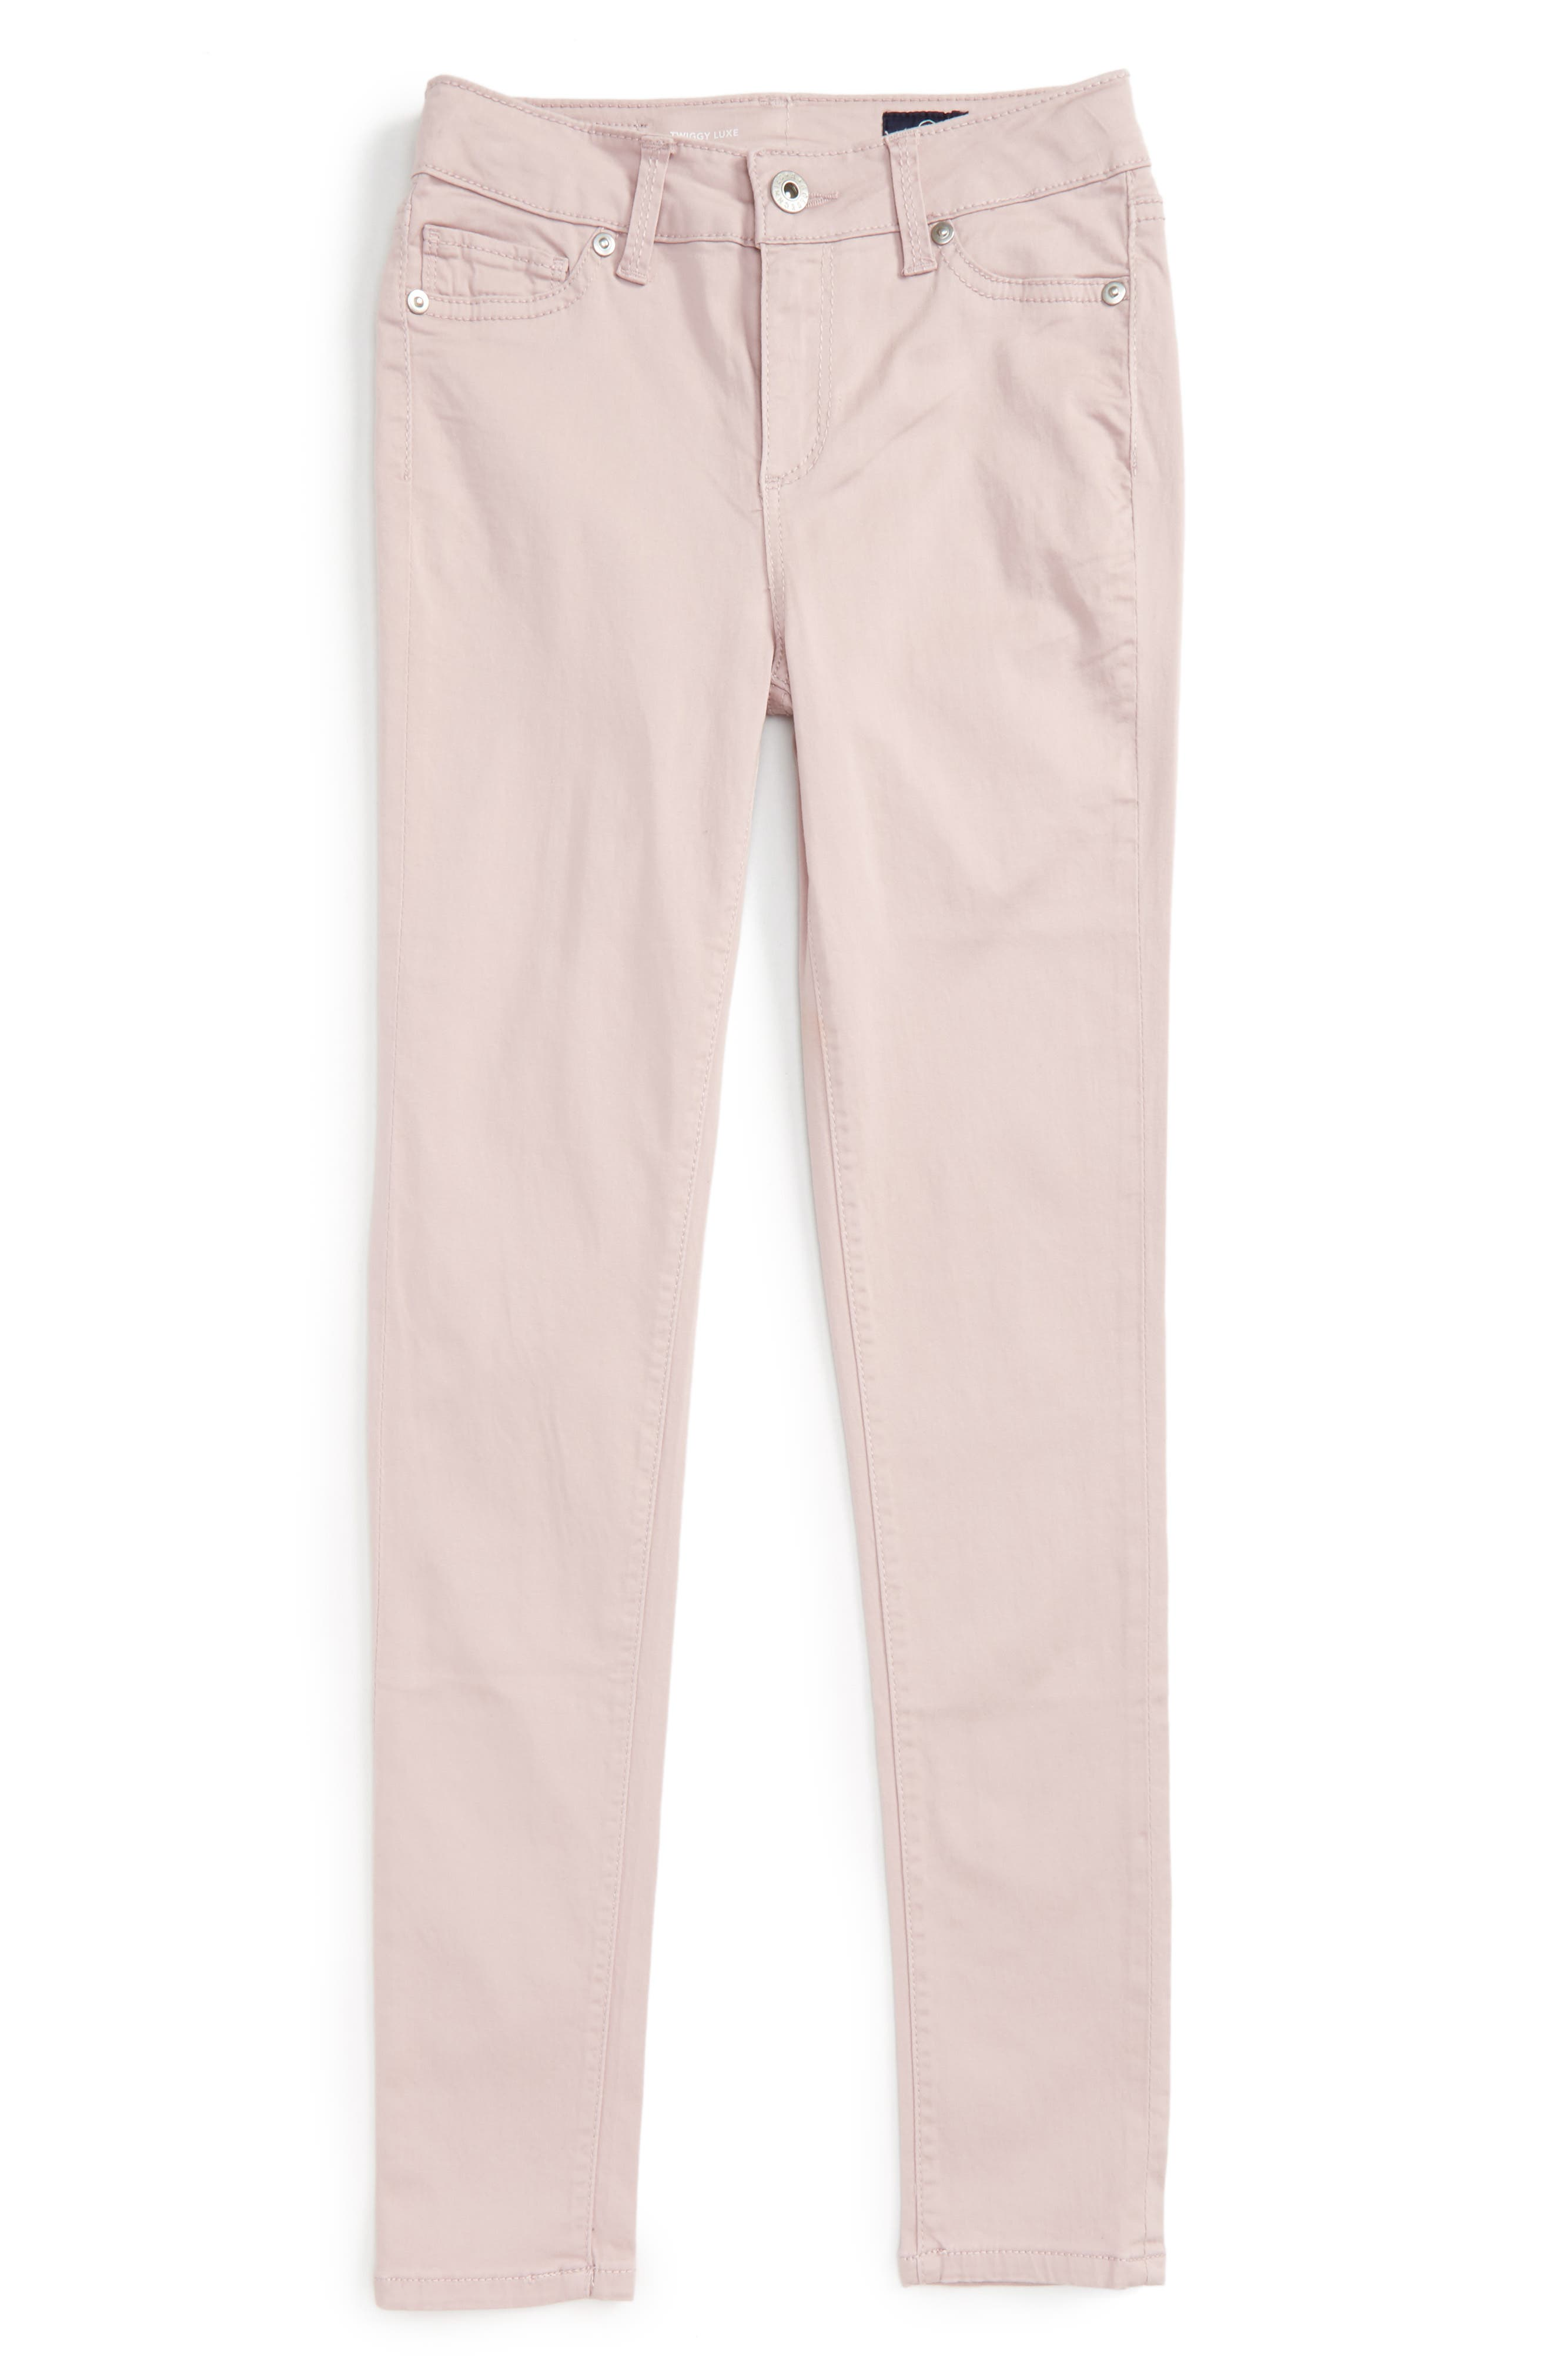 Twiggy Ankle Skinny Jeans,                             Main thumbnail 1, color,                             Light Pink